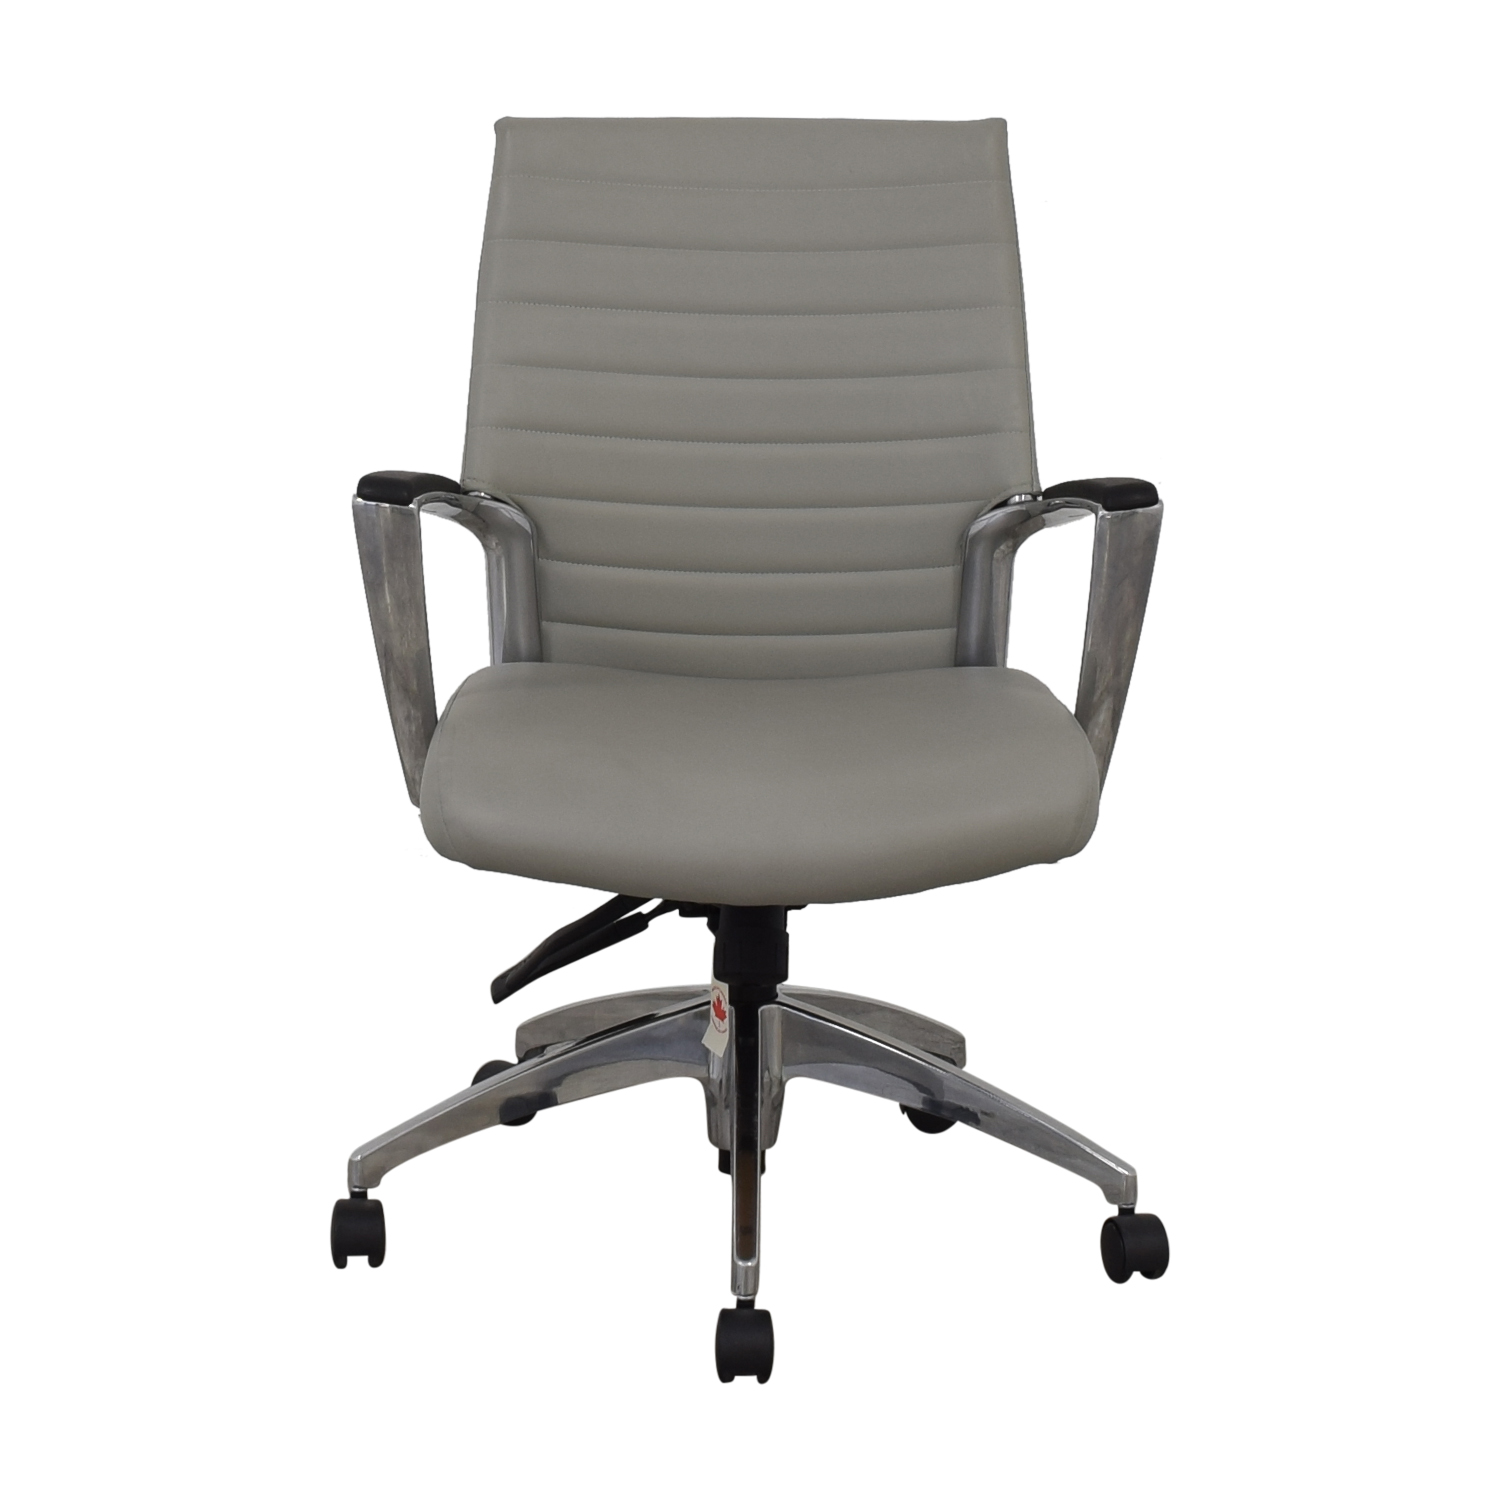 Global Accord Upholstered Medium Back Tilter Chair sale